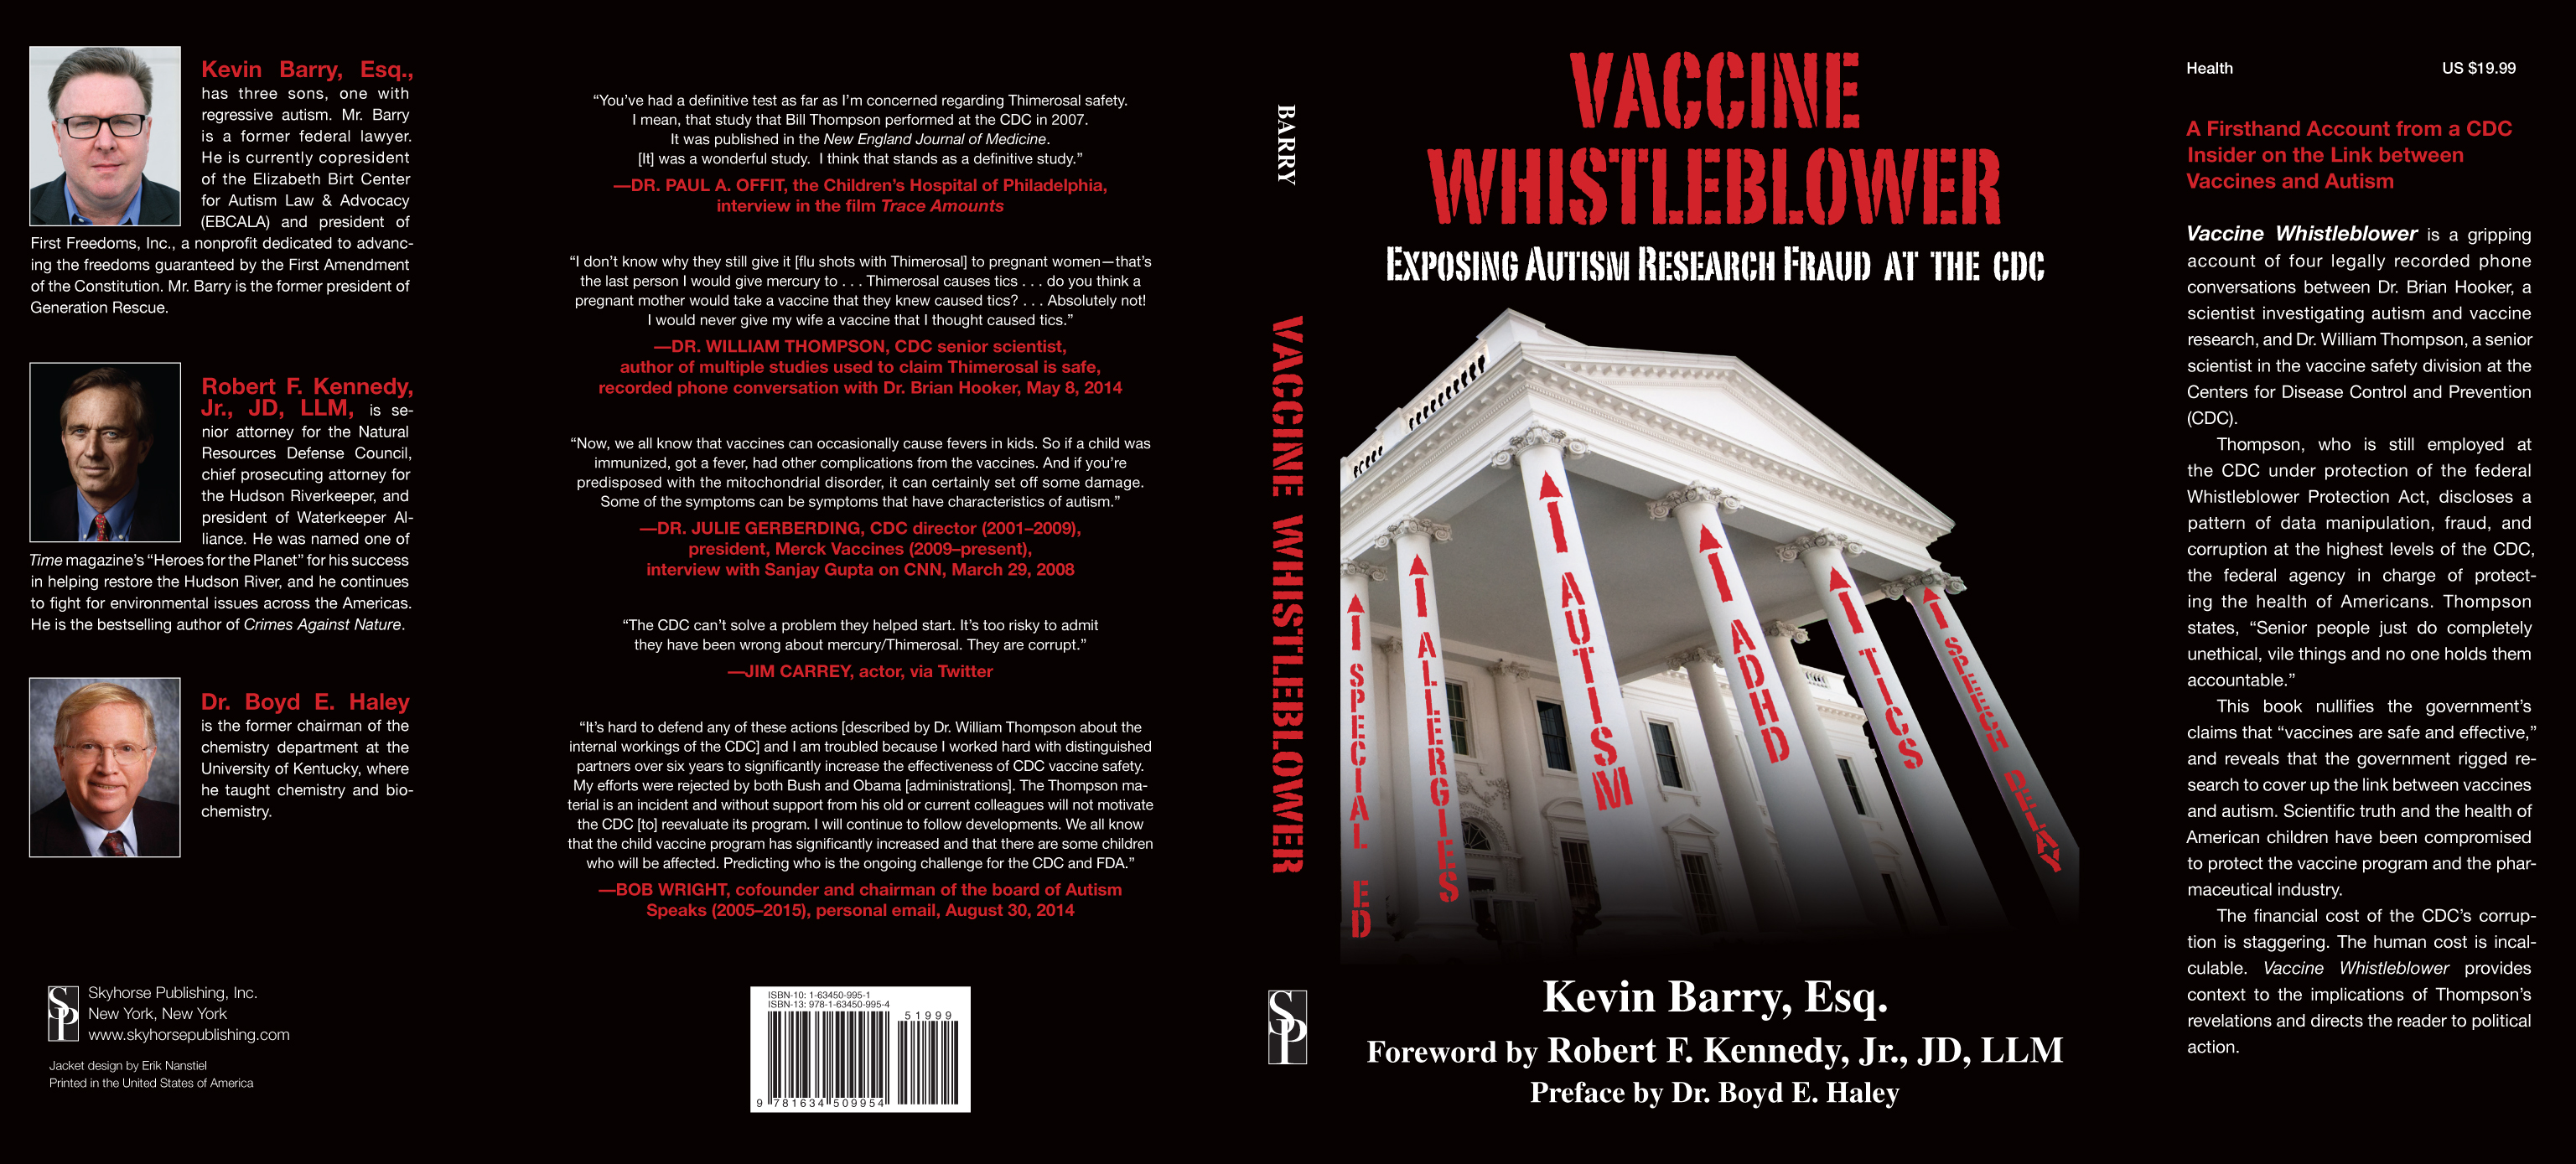 Vaccine Whistleblower dust jacket